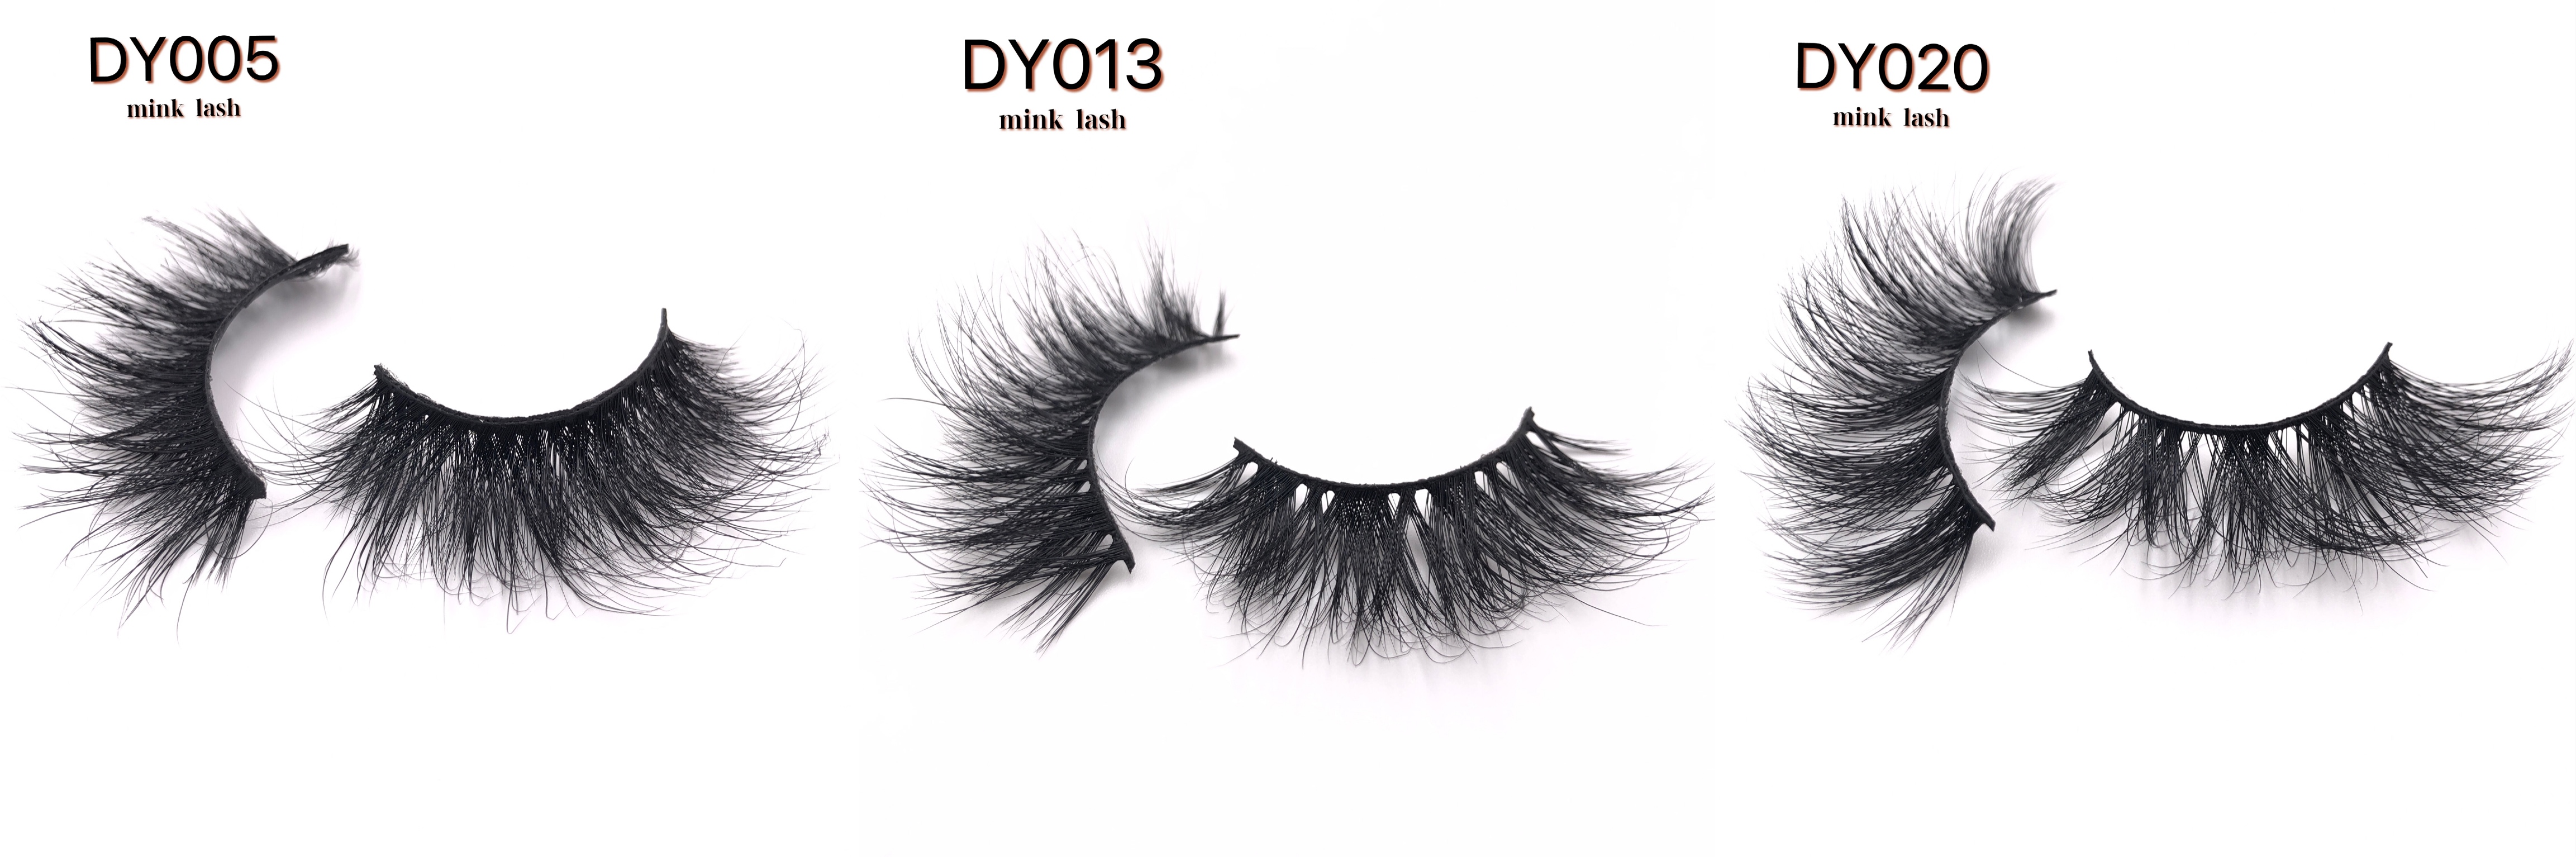 wholesale custom false mink lashes 3d mink eyelashes private label square packaging box for eyelash